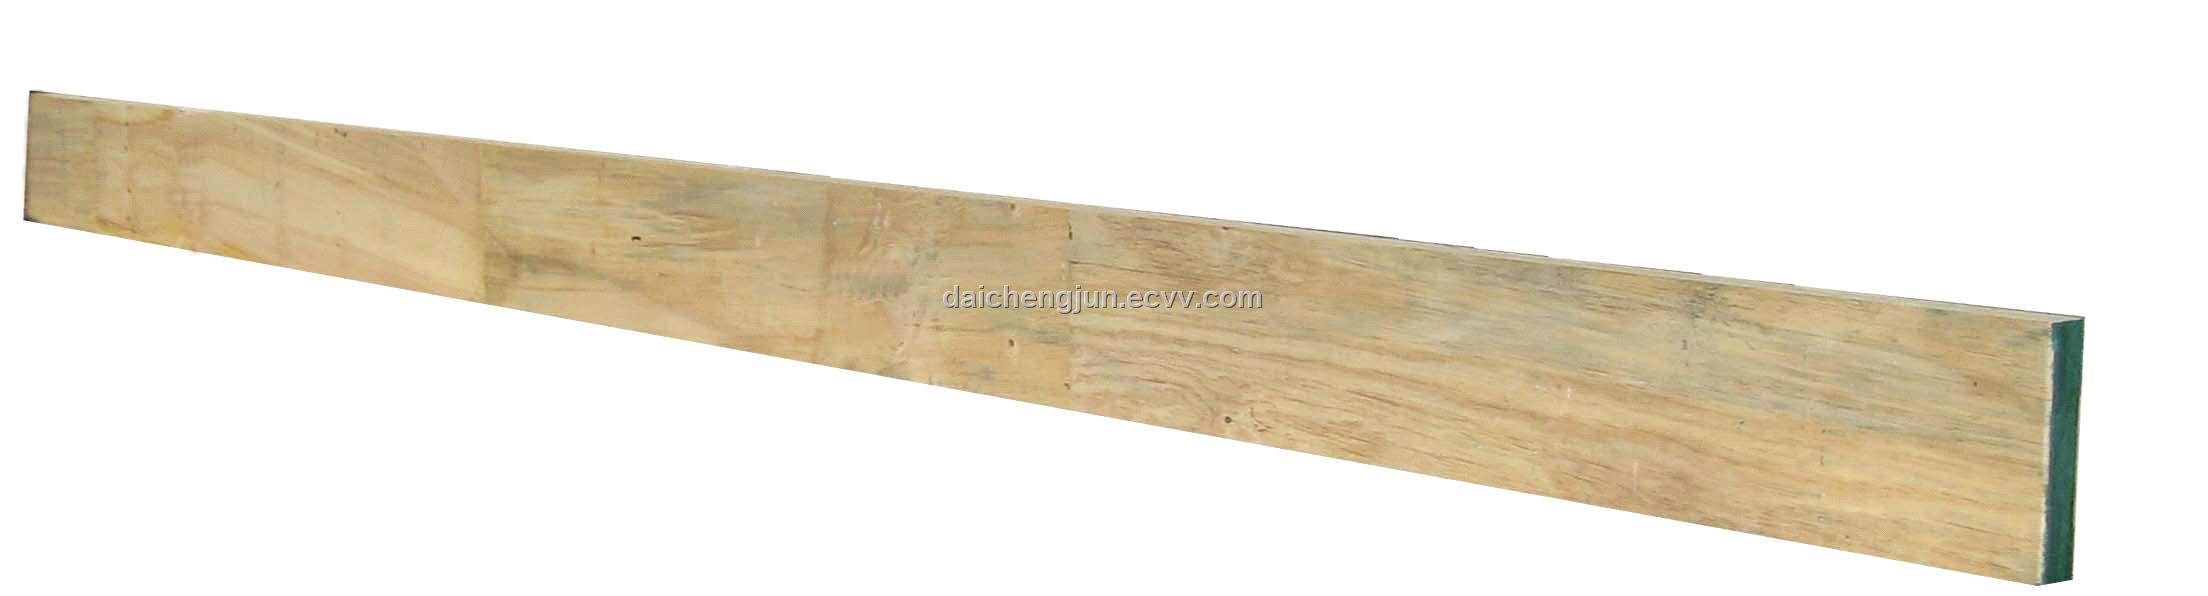 Product Scaffolding Boards : Lvl scaffold boards purchasing souring agent ecvv